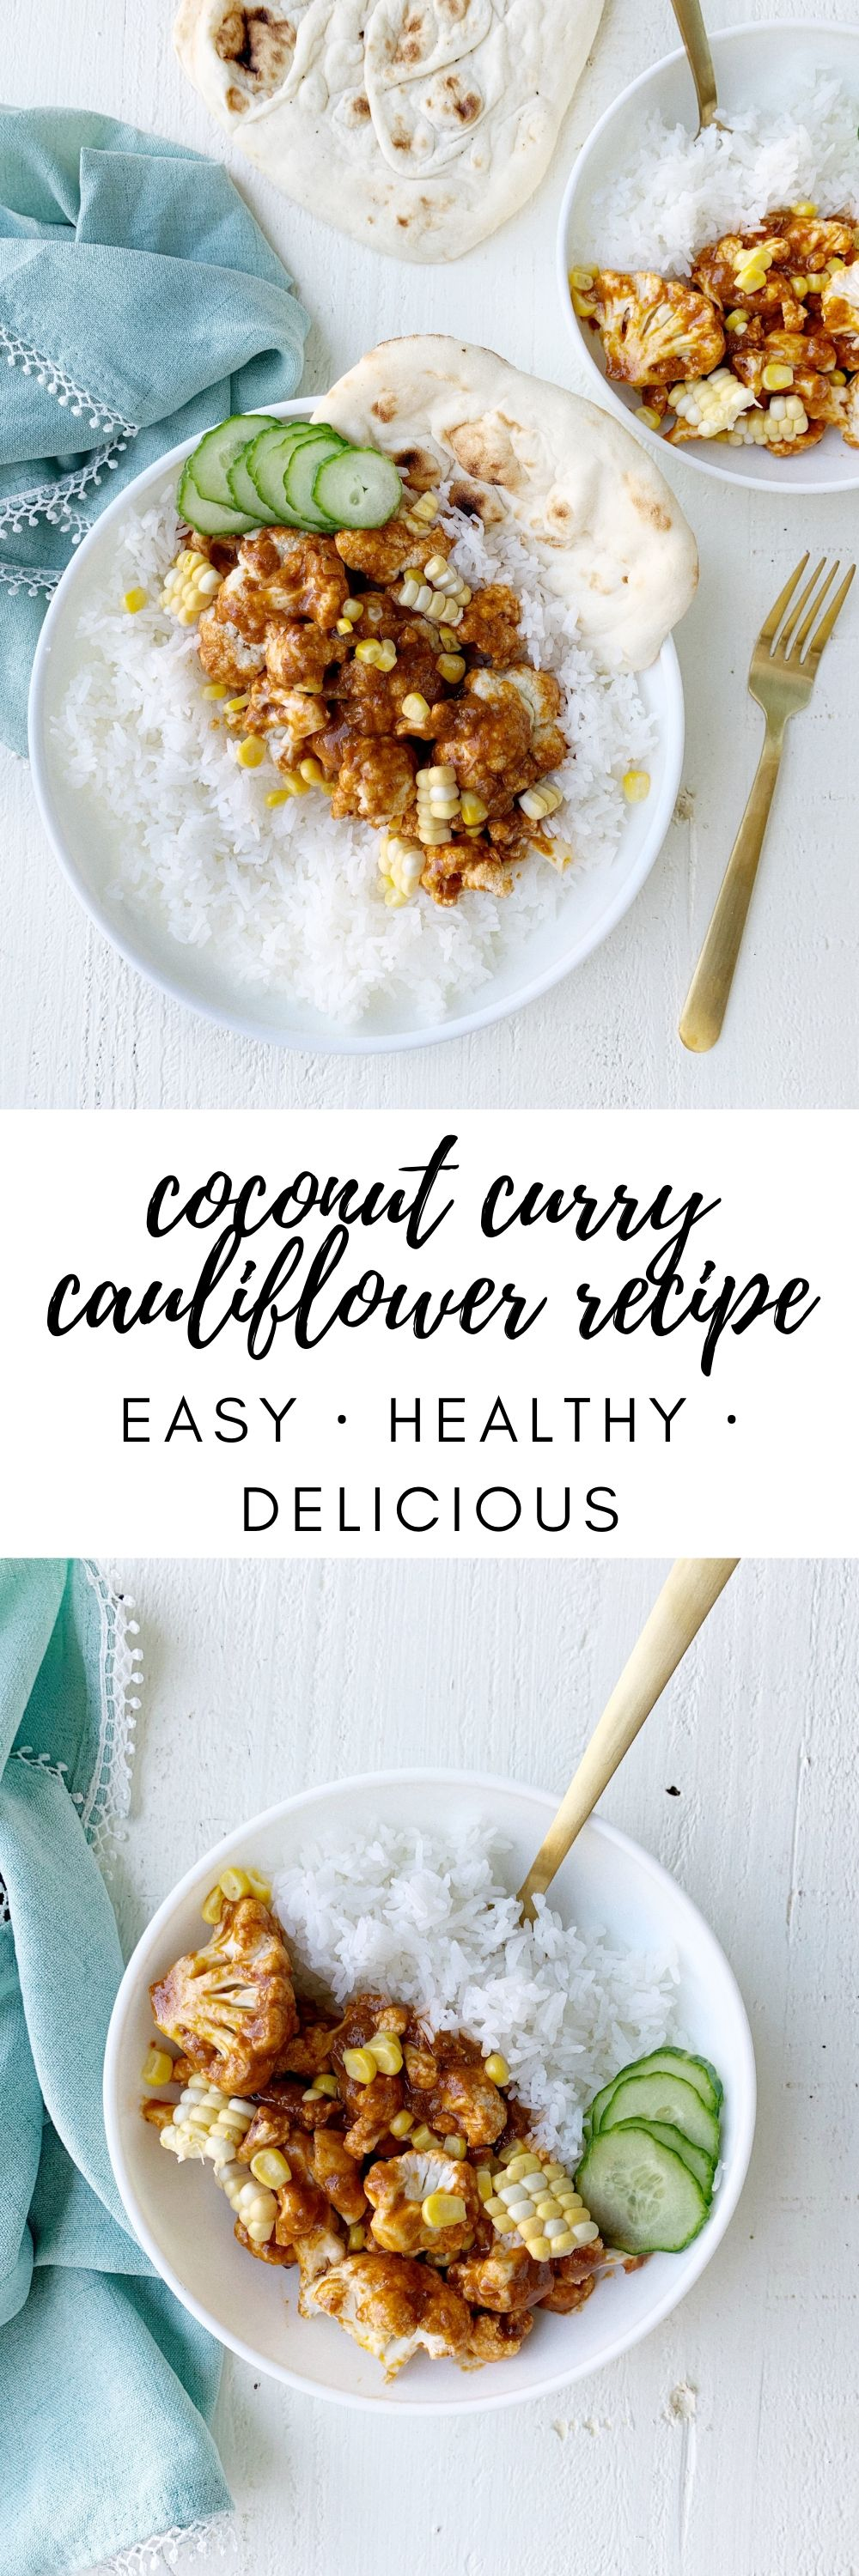 coconut curry cauliflower recipe